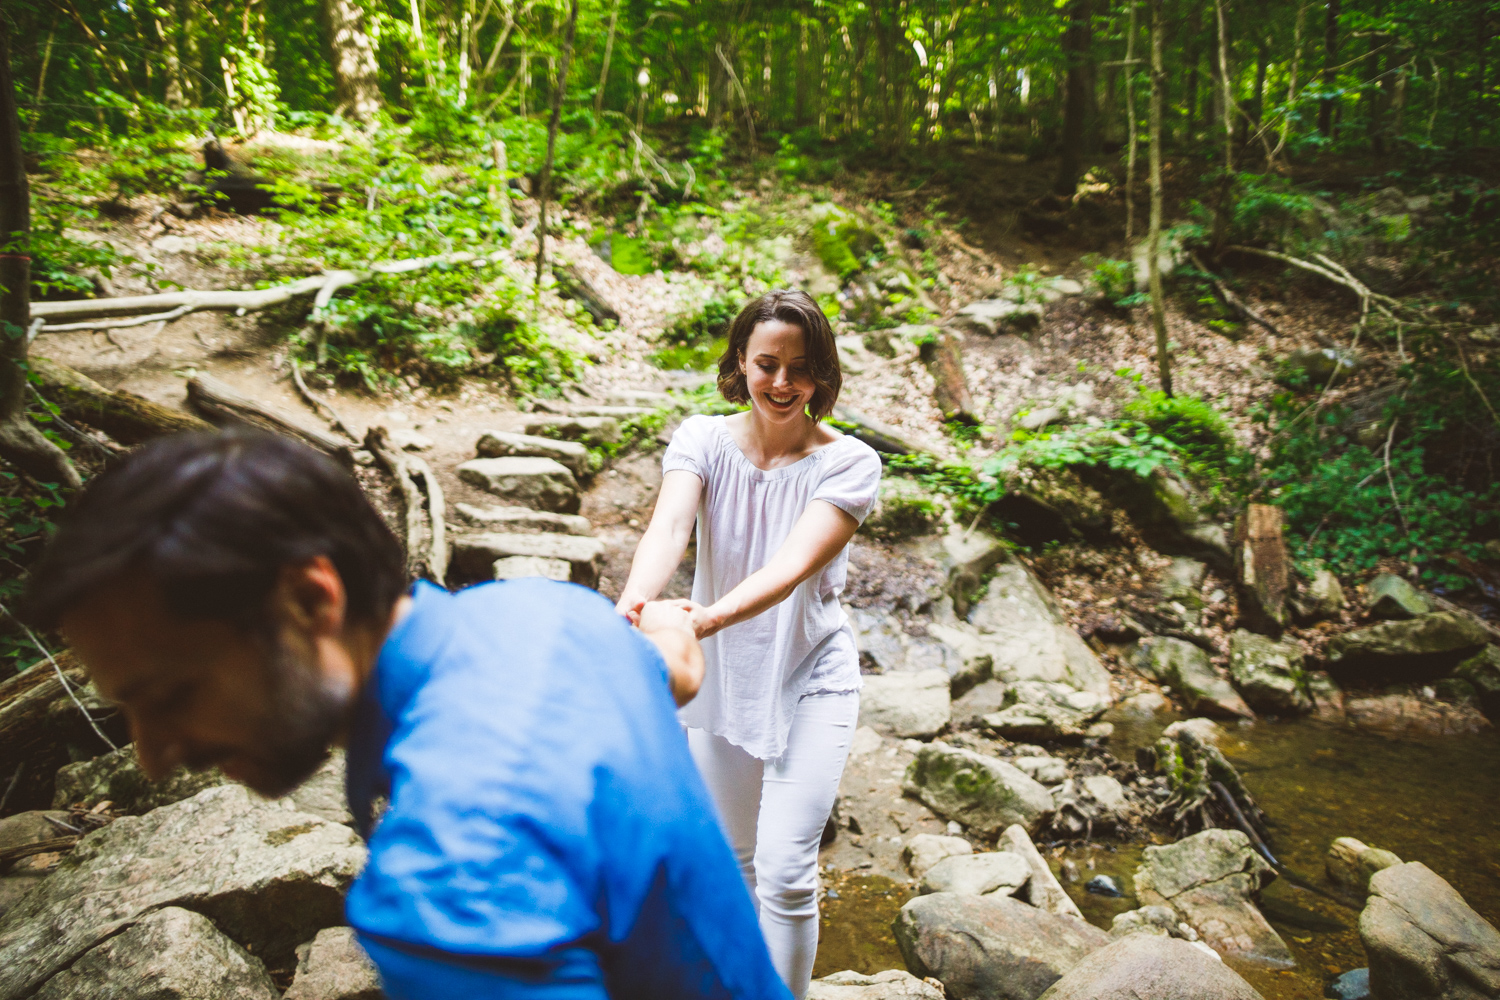 005 - man leads woman over creek rocks at their engagement session.jpg